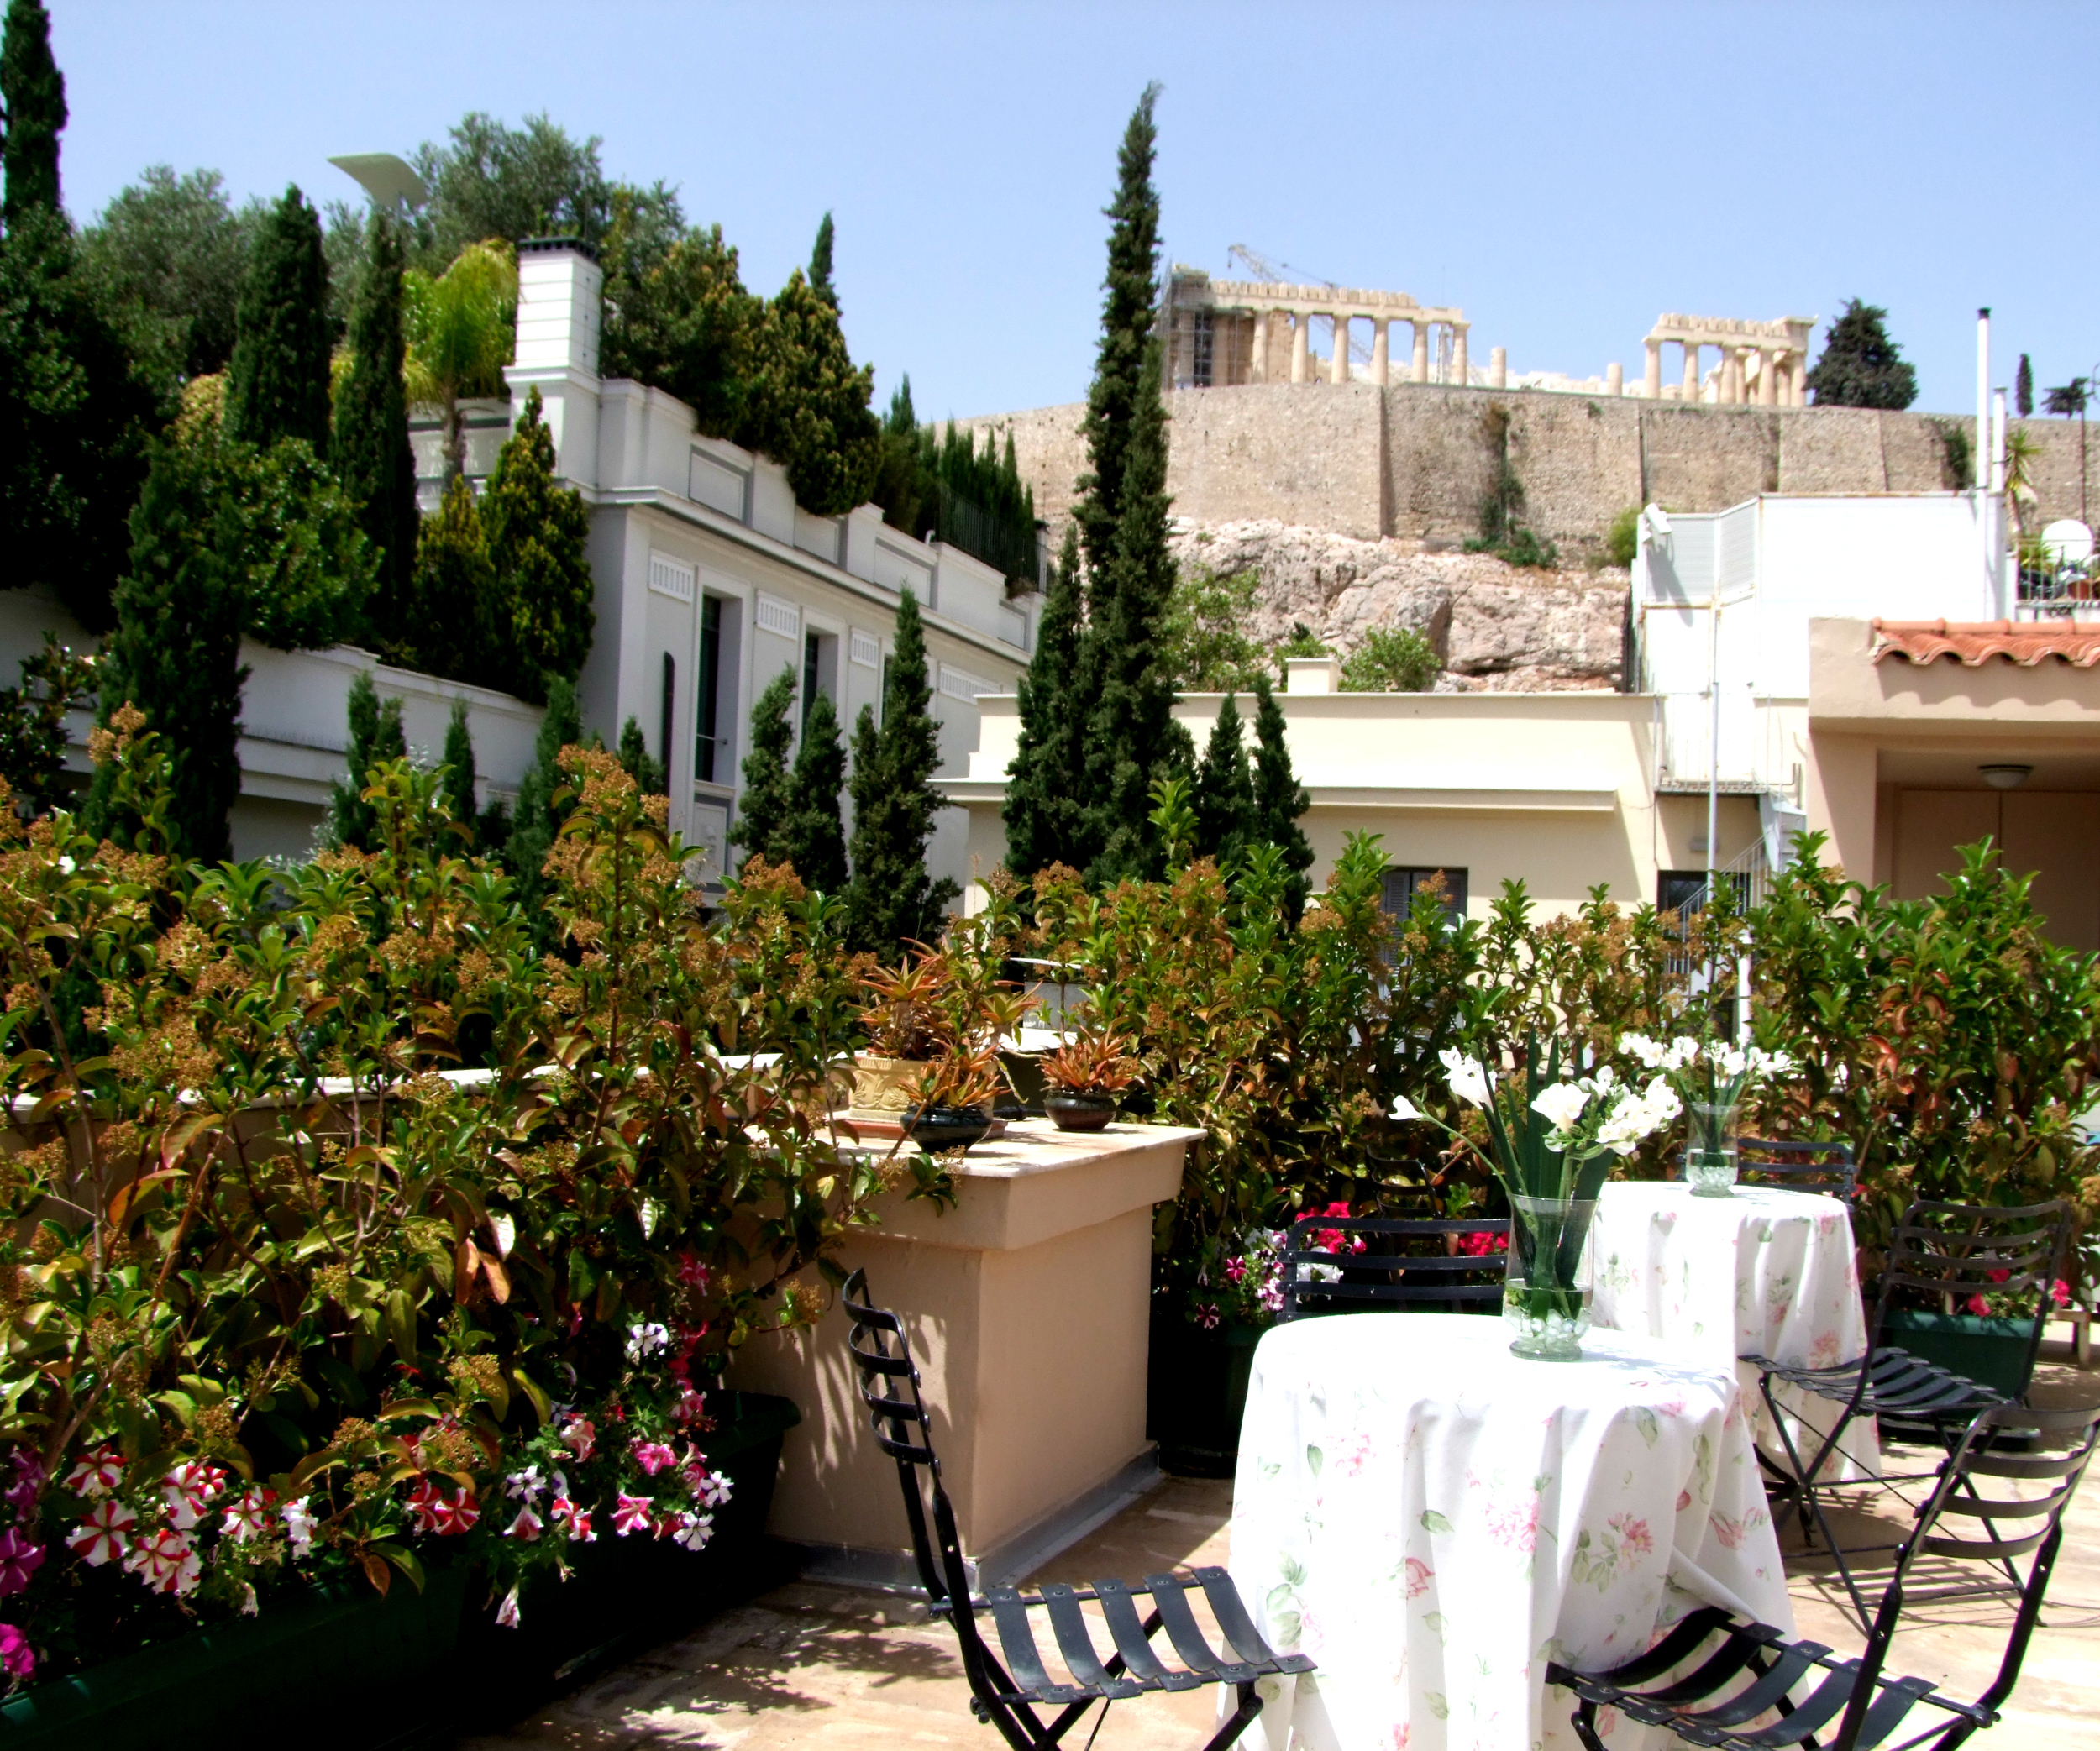 The Lalaounis'Museum terrace is a hidden gem in the city (Picture courtesy Ilias Lalaounis Jewelry Museum)